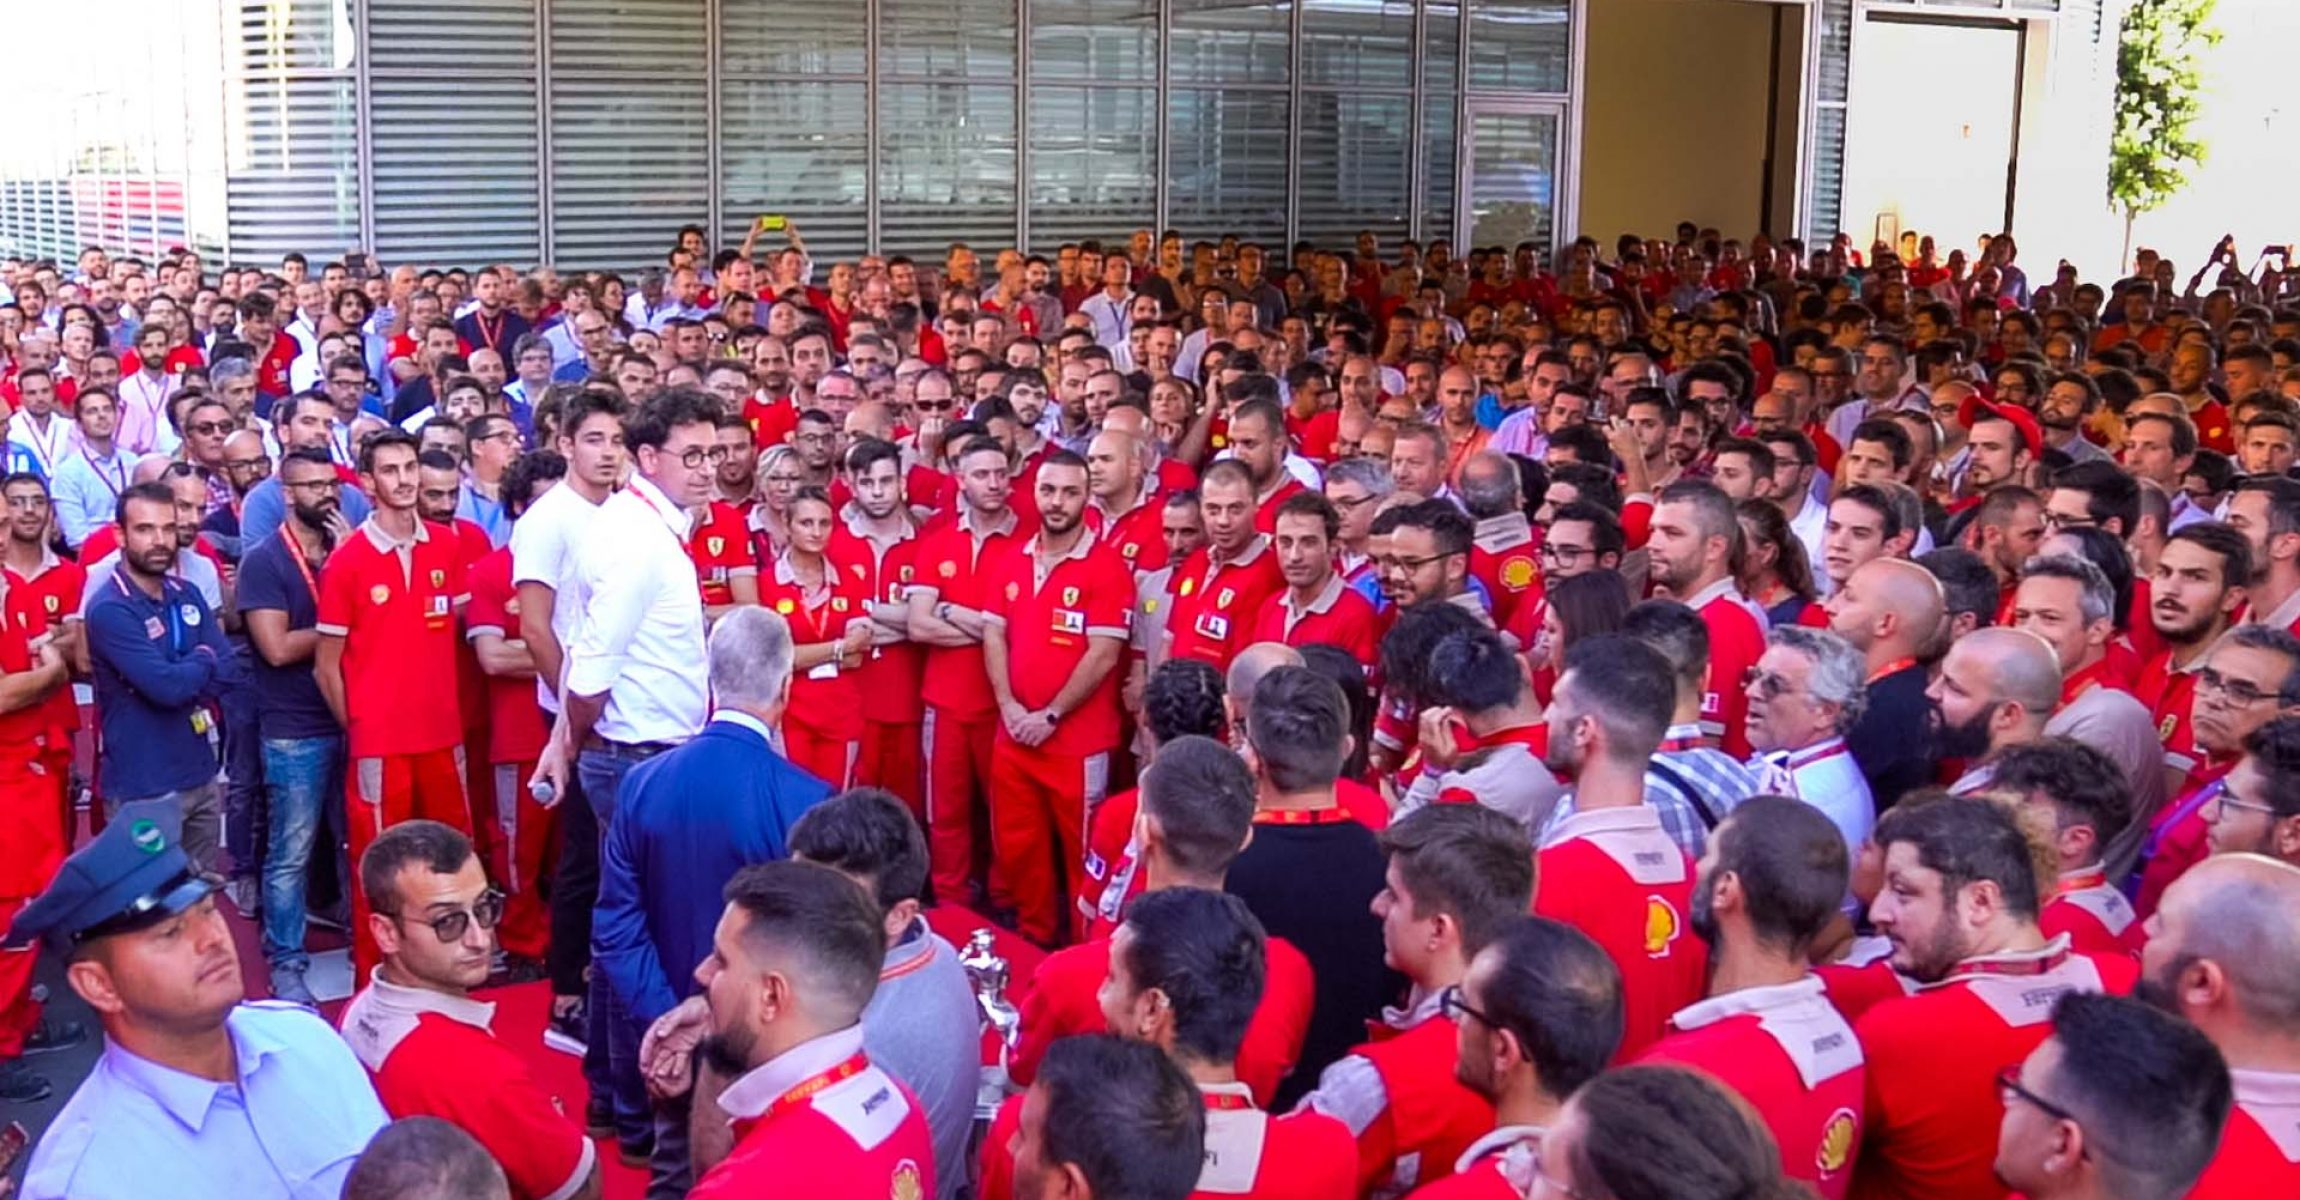 Ferrari celebration Charles Leclerc's first wins with Mattia Binotto